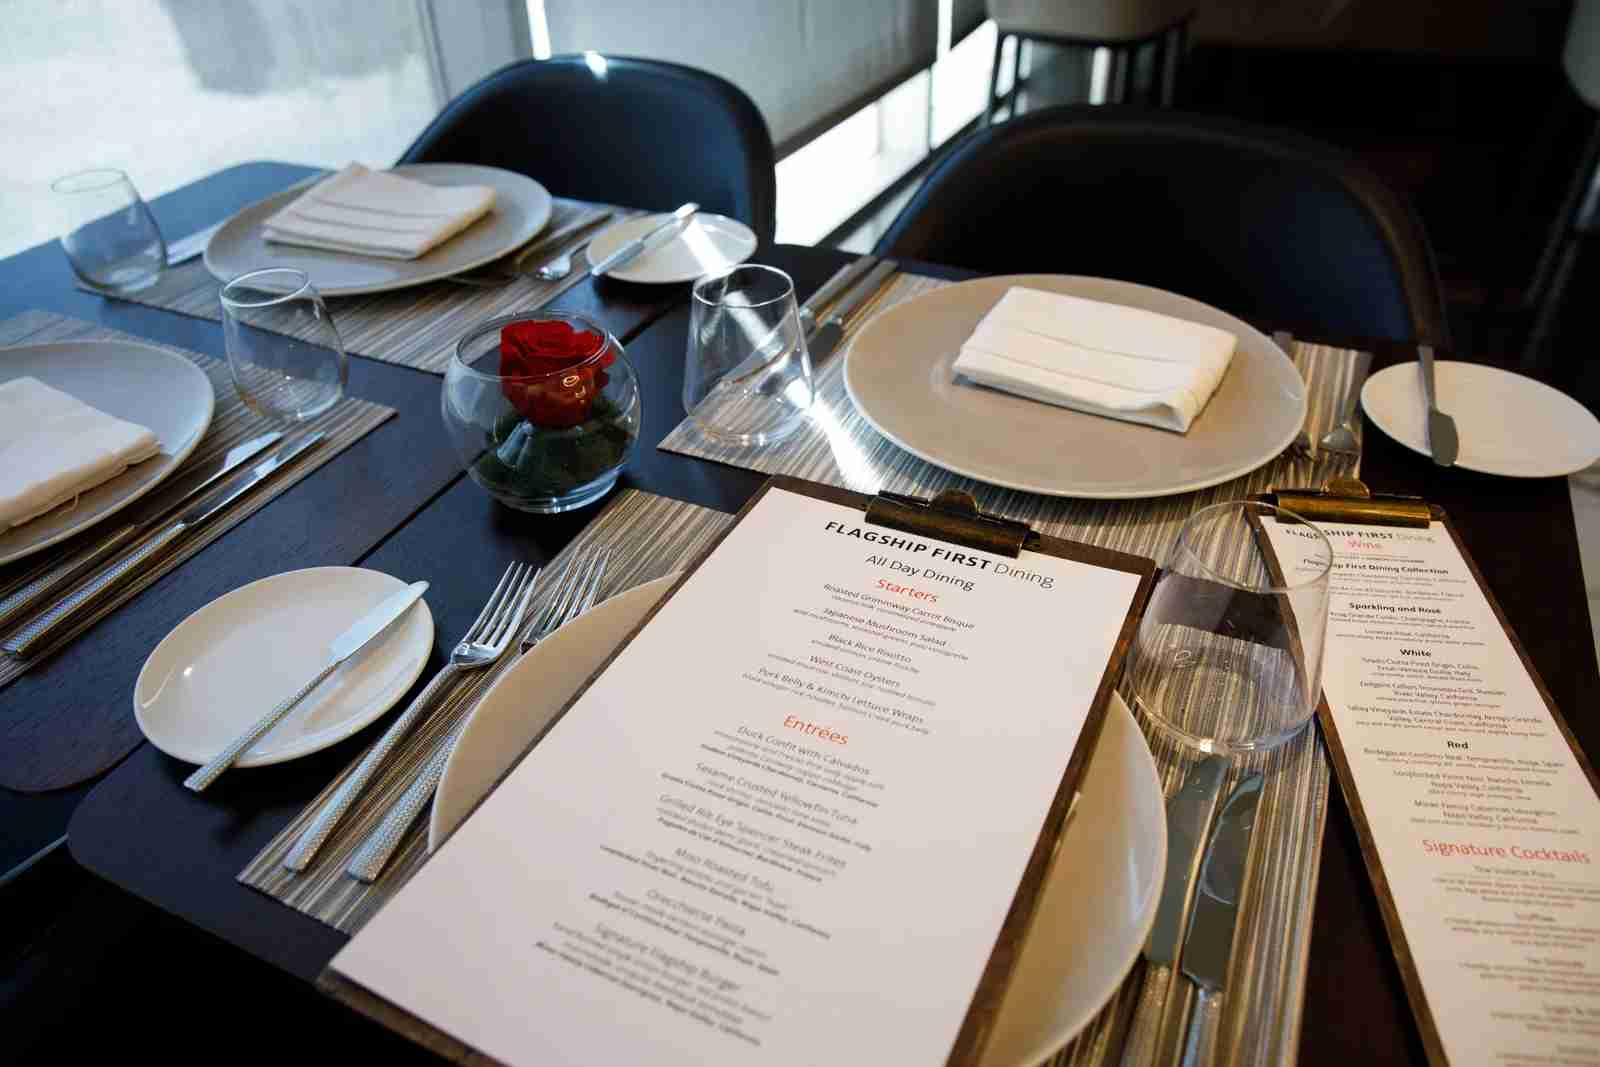 American Airlines Group Inc. Flagship First Class Dining inside the Flagship Lounge at Los Angeles International Airport (LAX) on Friday, March 29, 2019 in Los Angeles, Calif. © 2019 Patrick T. Fallon for The Points Guy